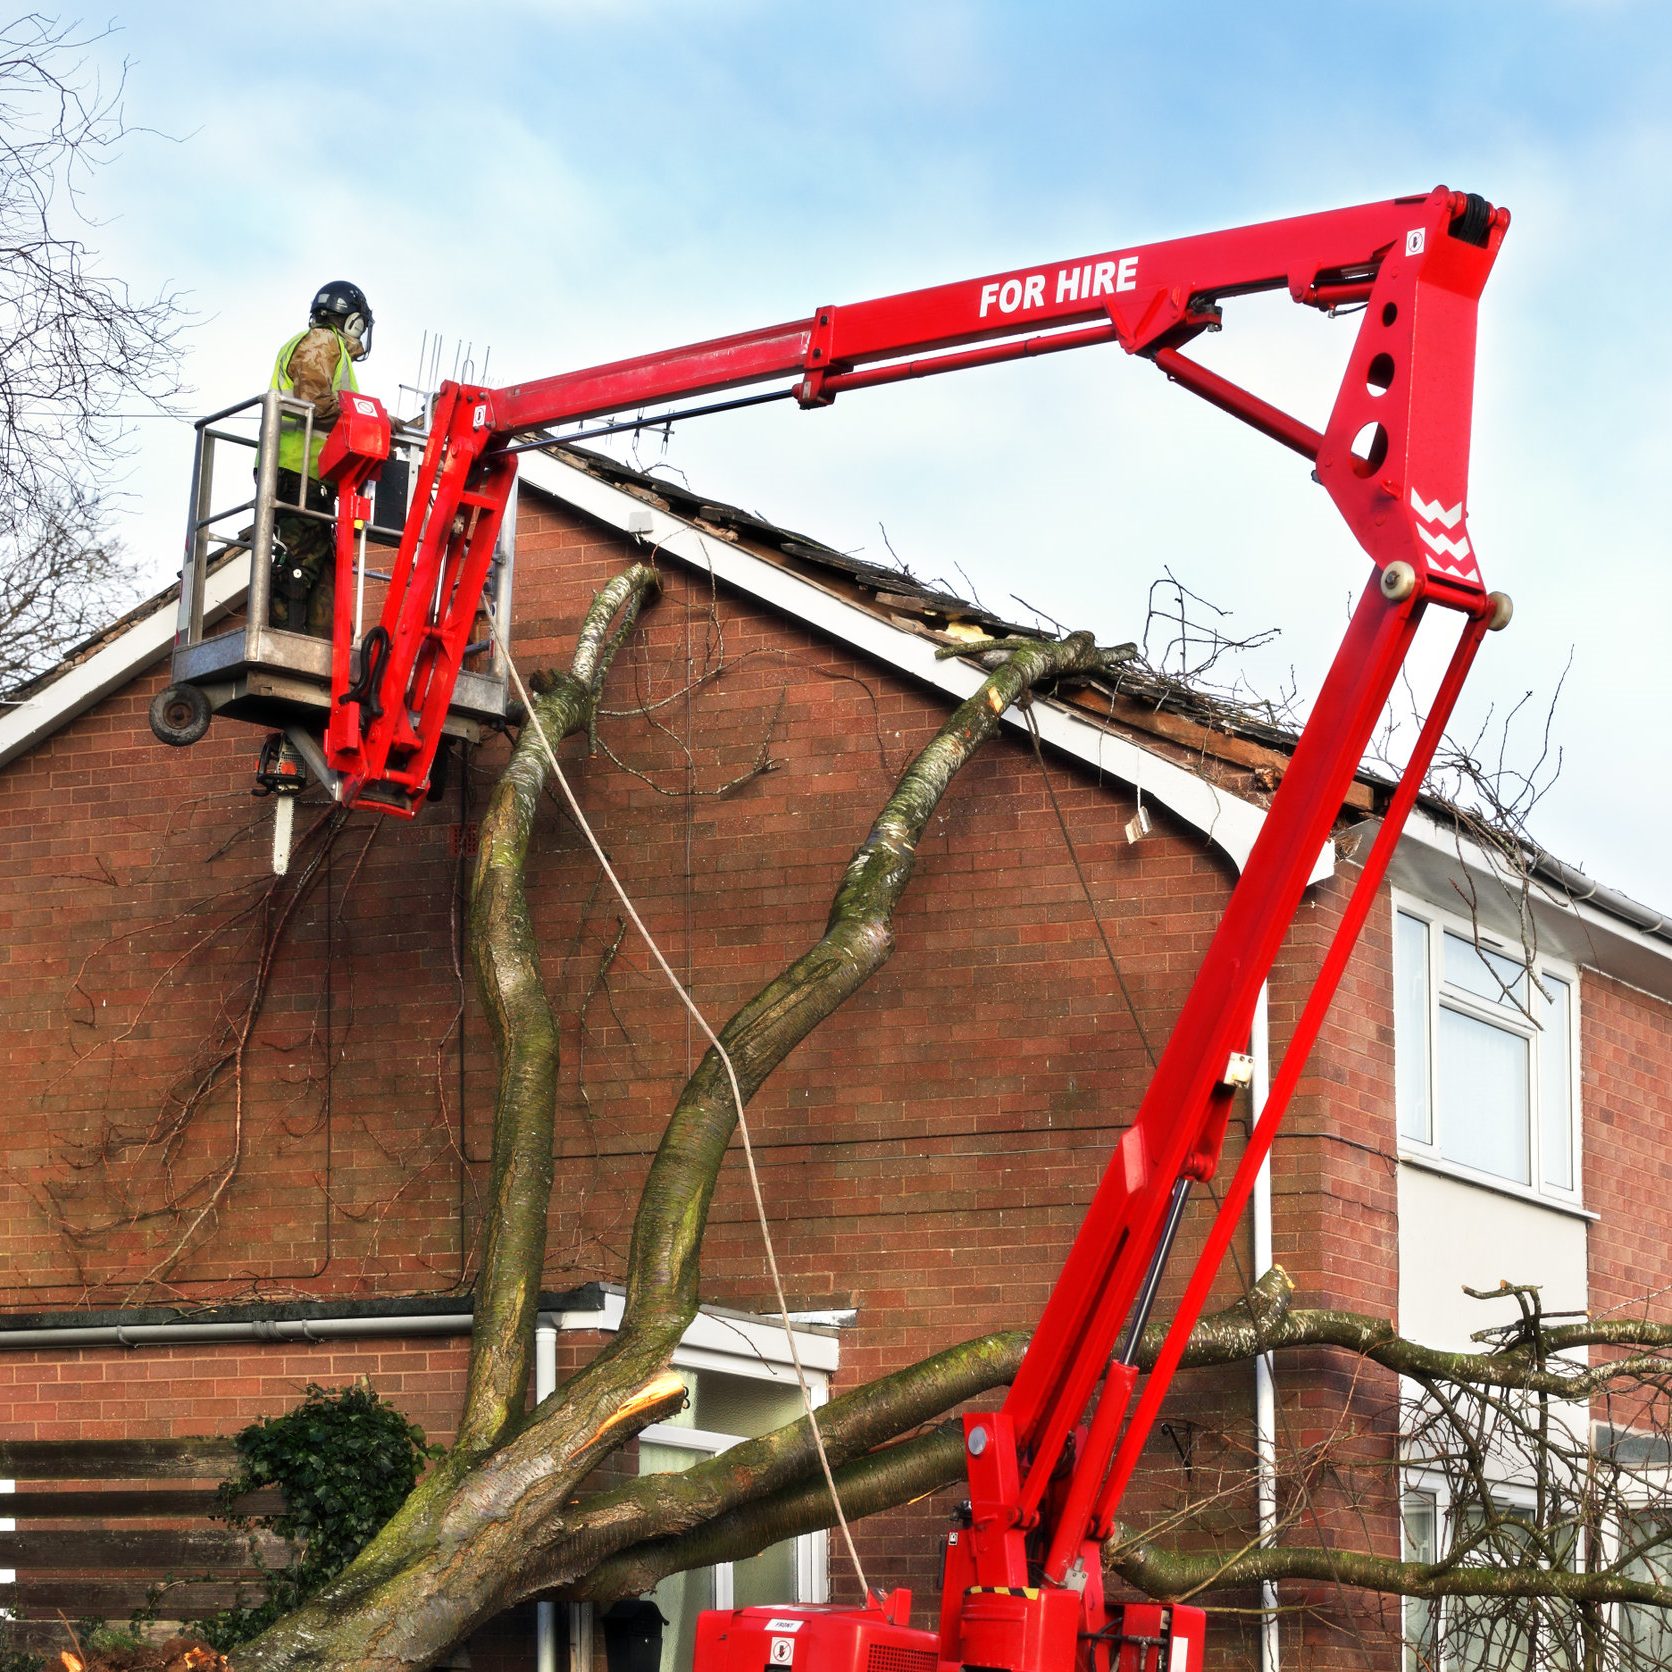 Roofer removing branches from a residential apartment